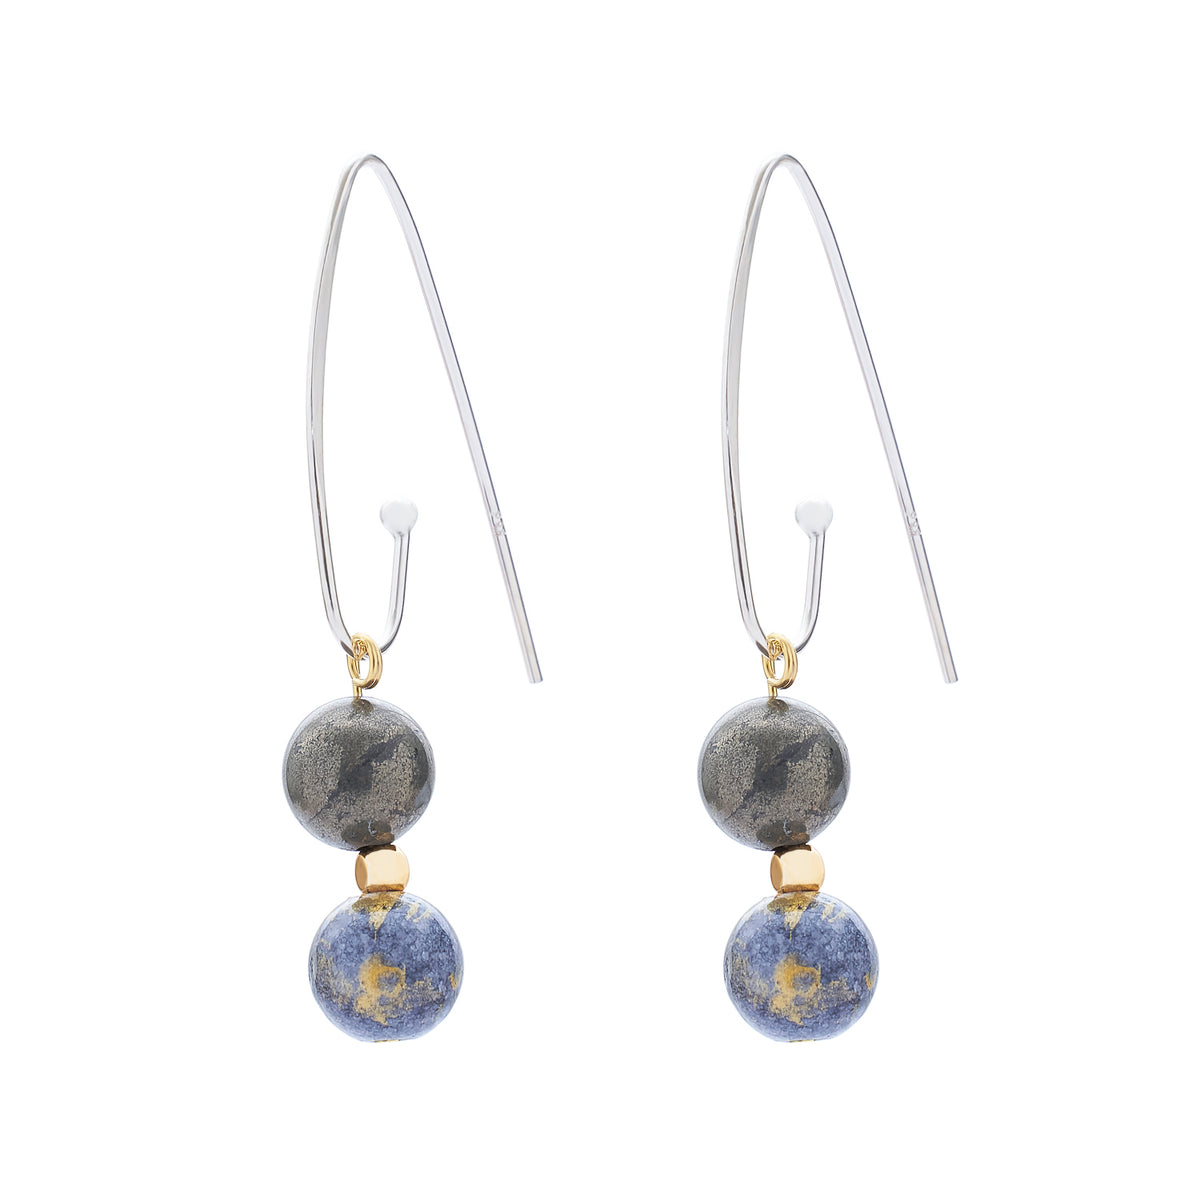 FRENCH HOOK EARRING | GREY GOLD JADE